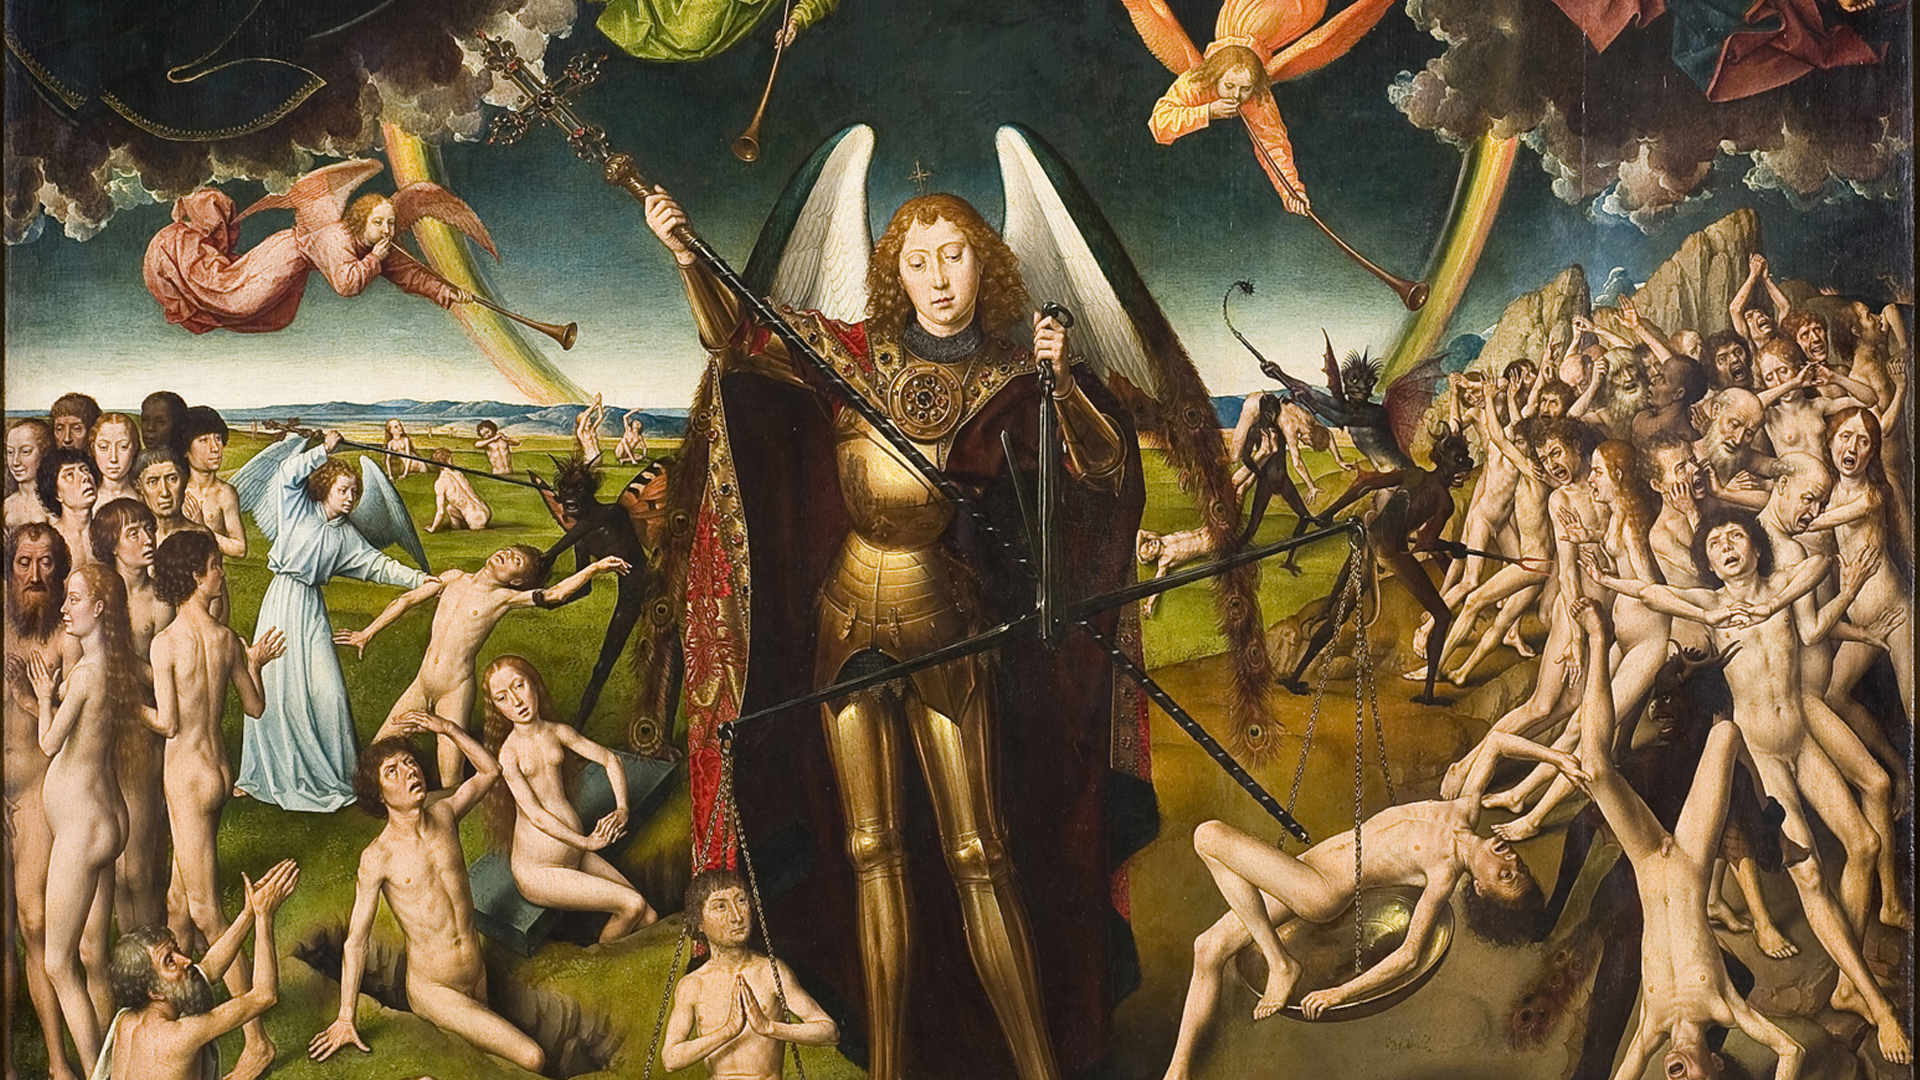 Hans Memling - Saint Michael the Archangel